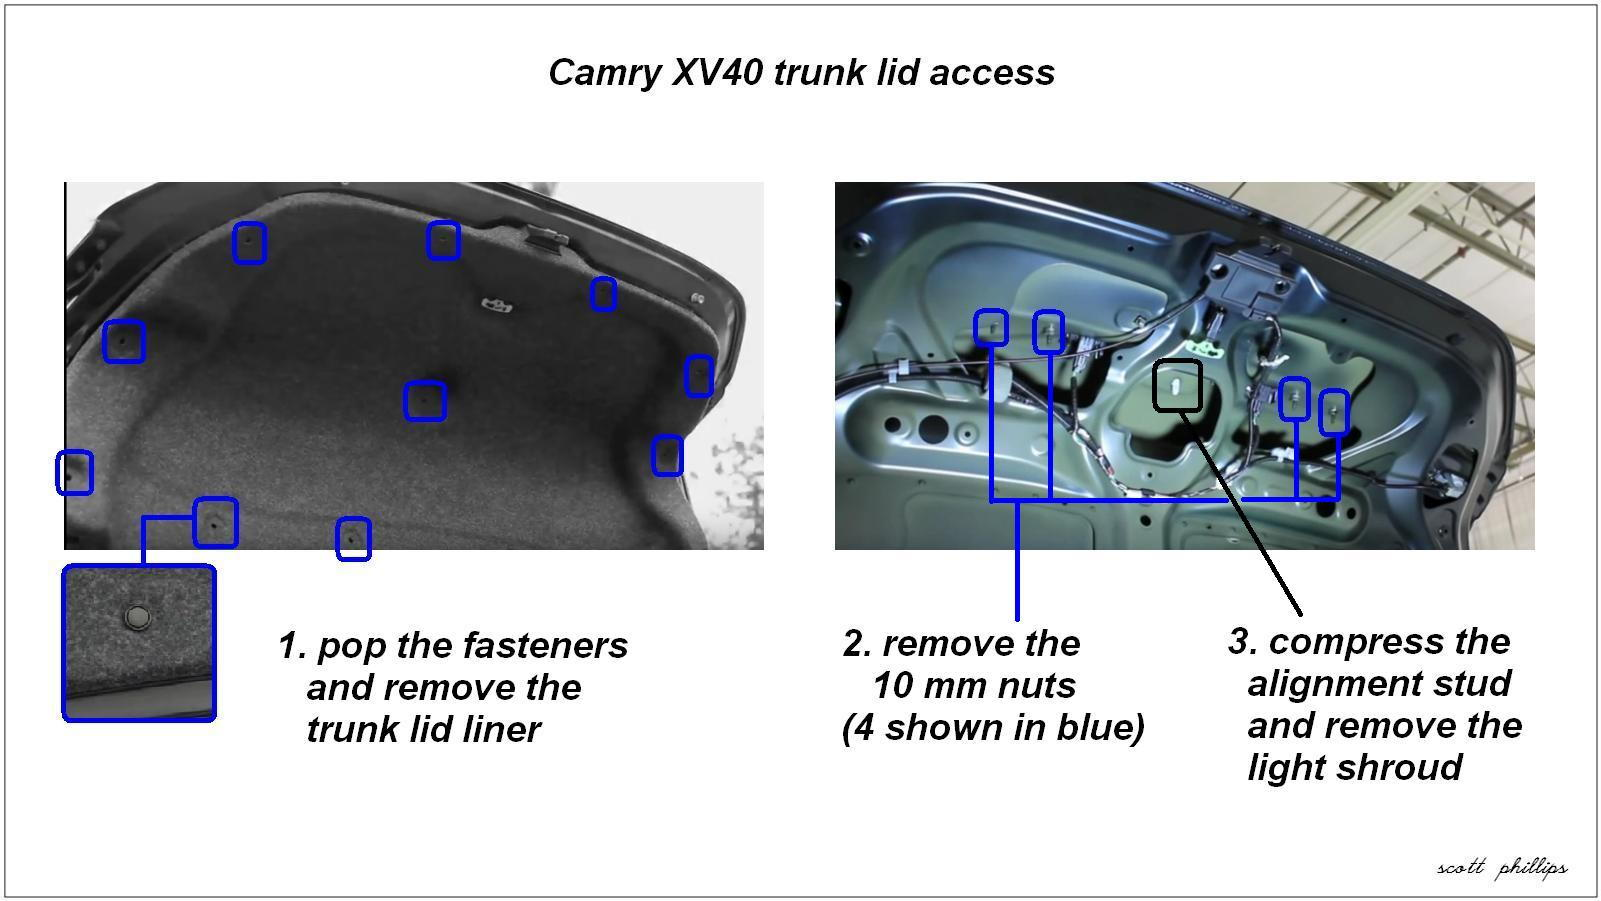 2 CamryXV40 Trunk LidAccess 86551 toyota camry 2007 2011 how to install rear view backup camera 2007 Toyota Avalon Wiring-Diagram at eliteediting.co